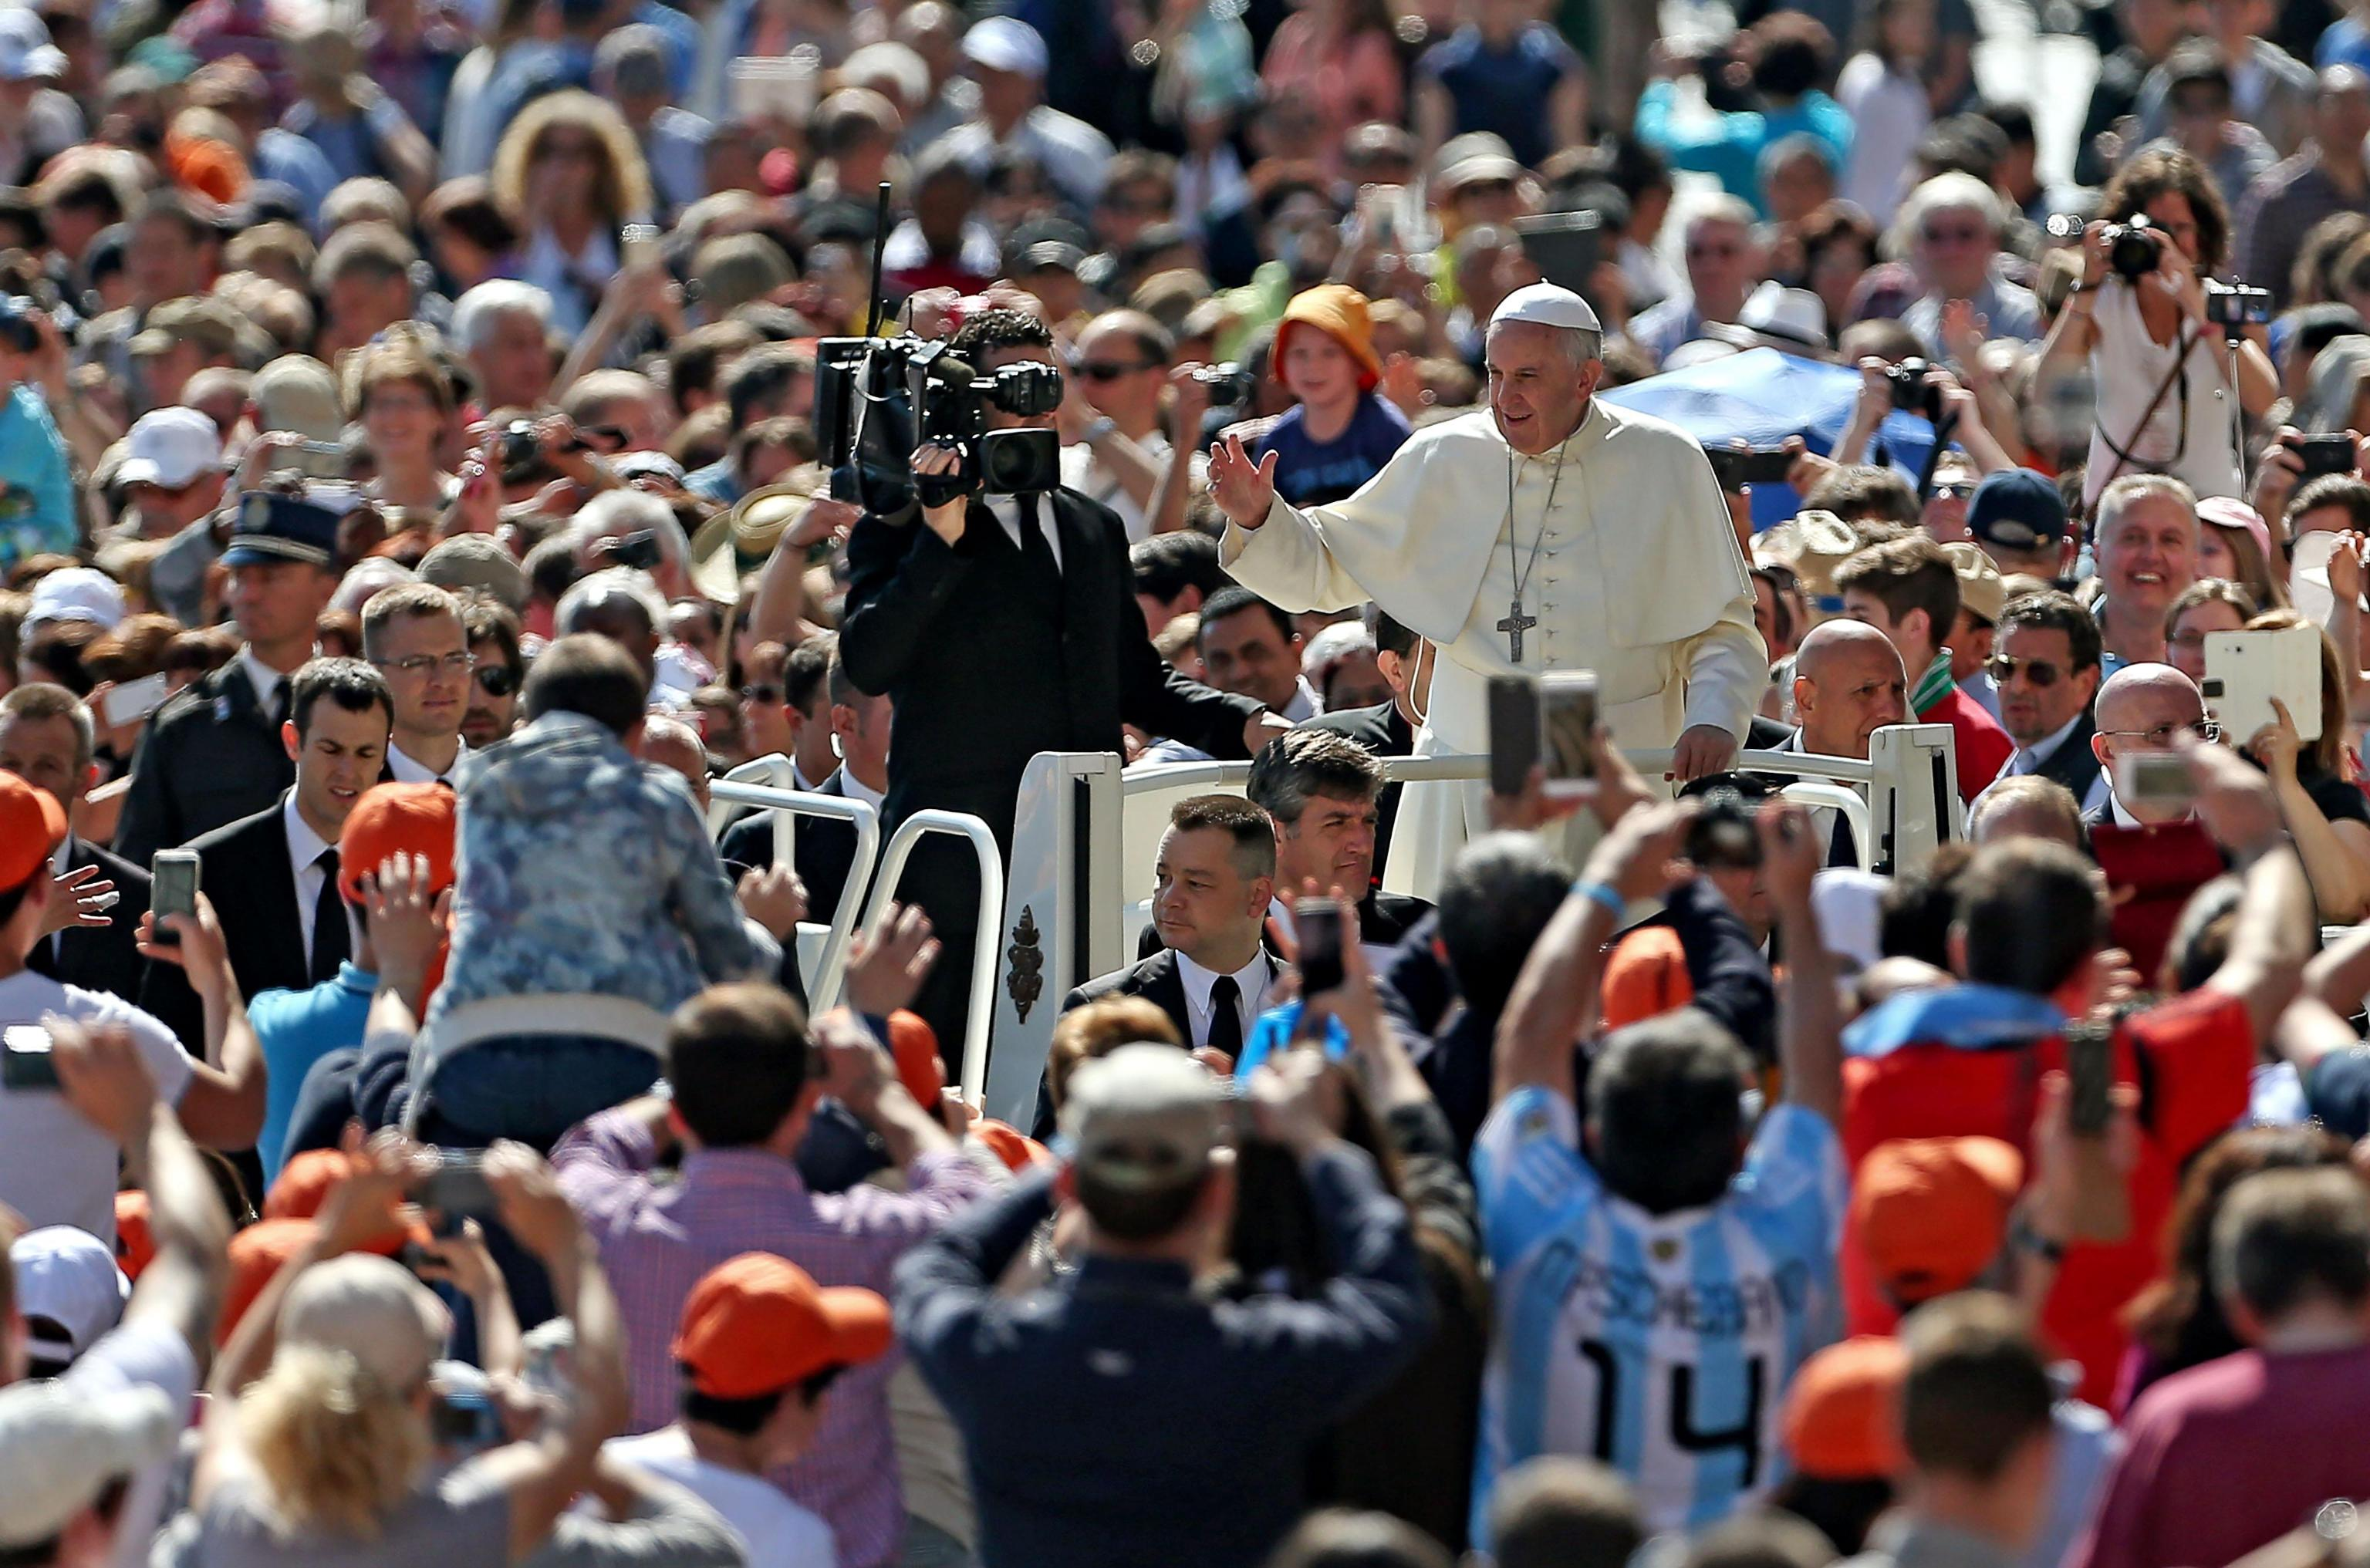 Pope Francis greets the crowd as he arrives for his weekly general audience in St. Peter's Square